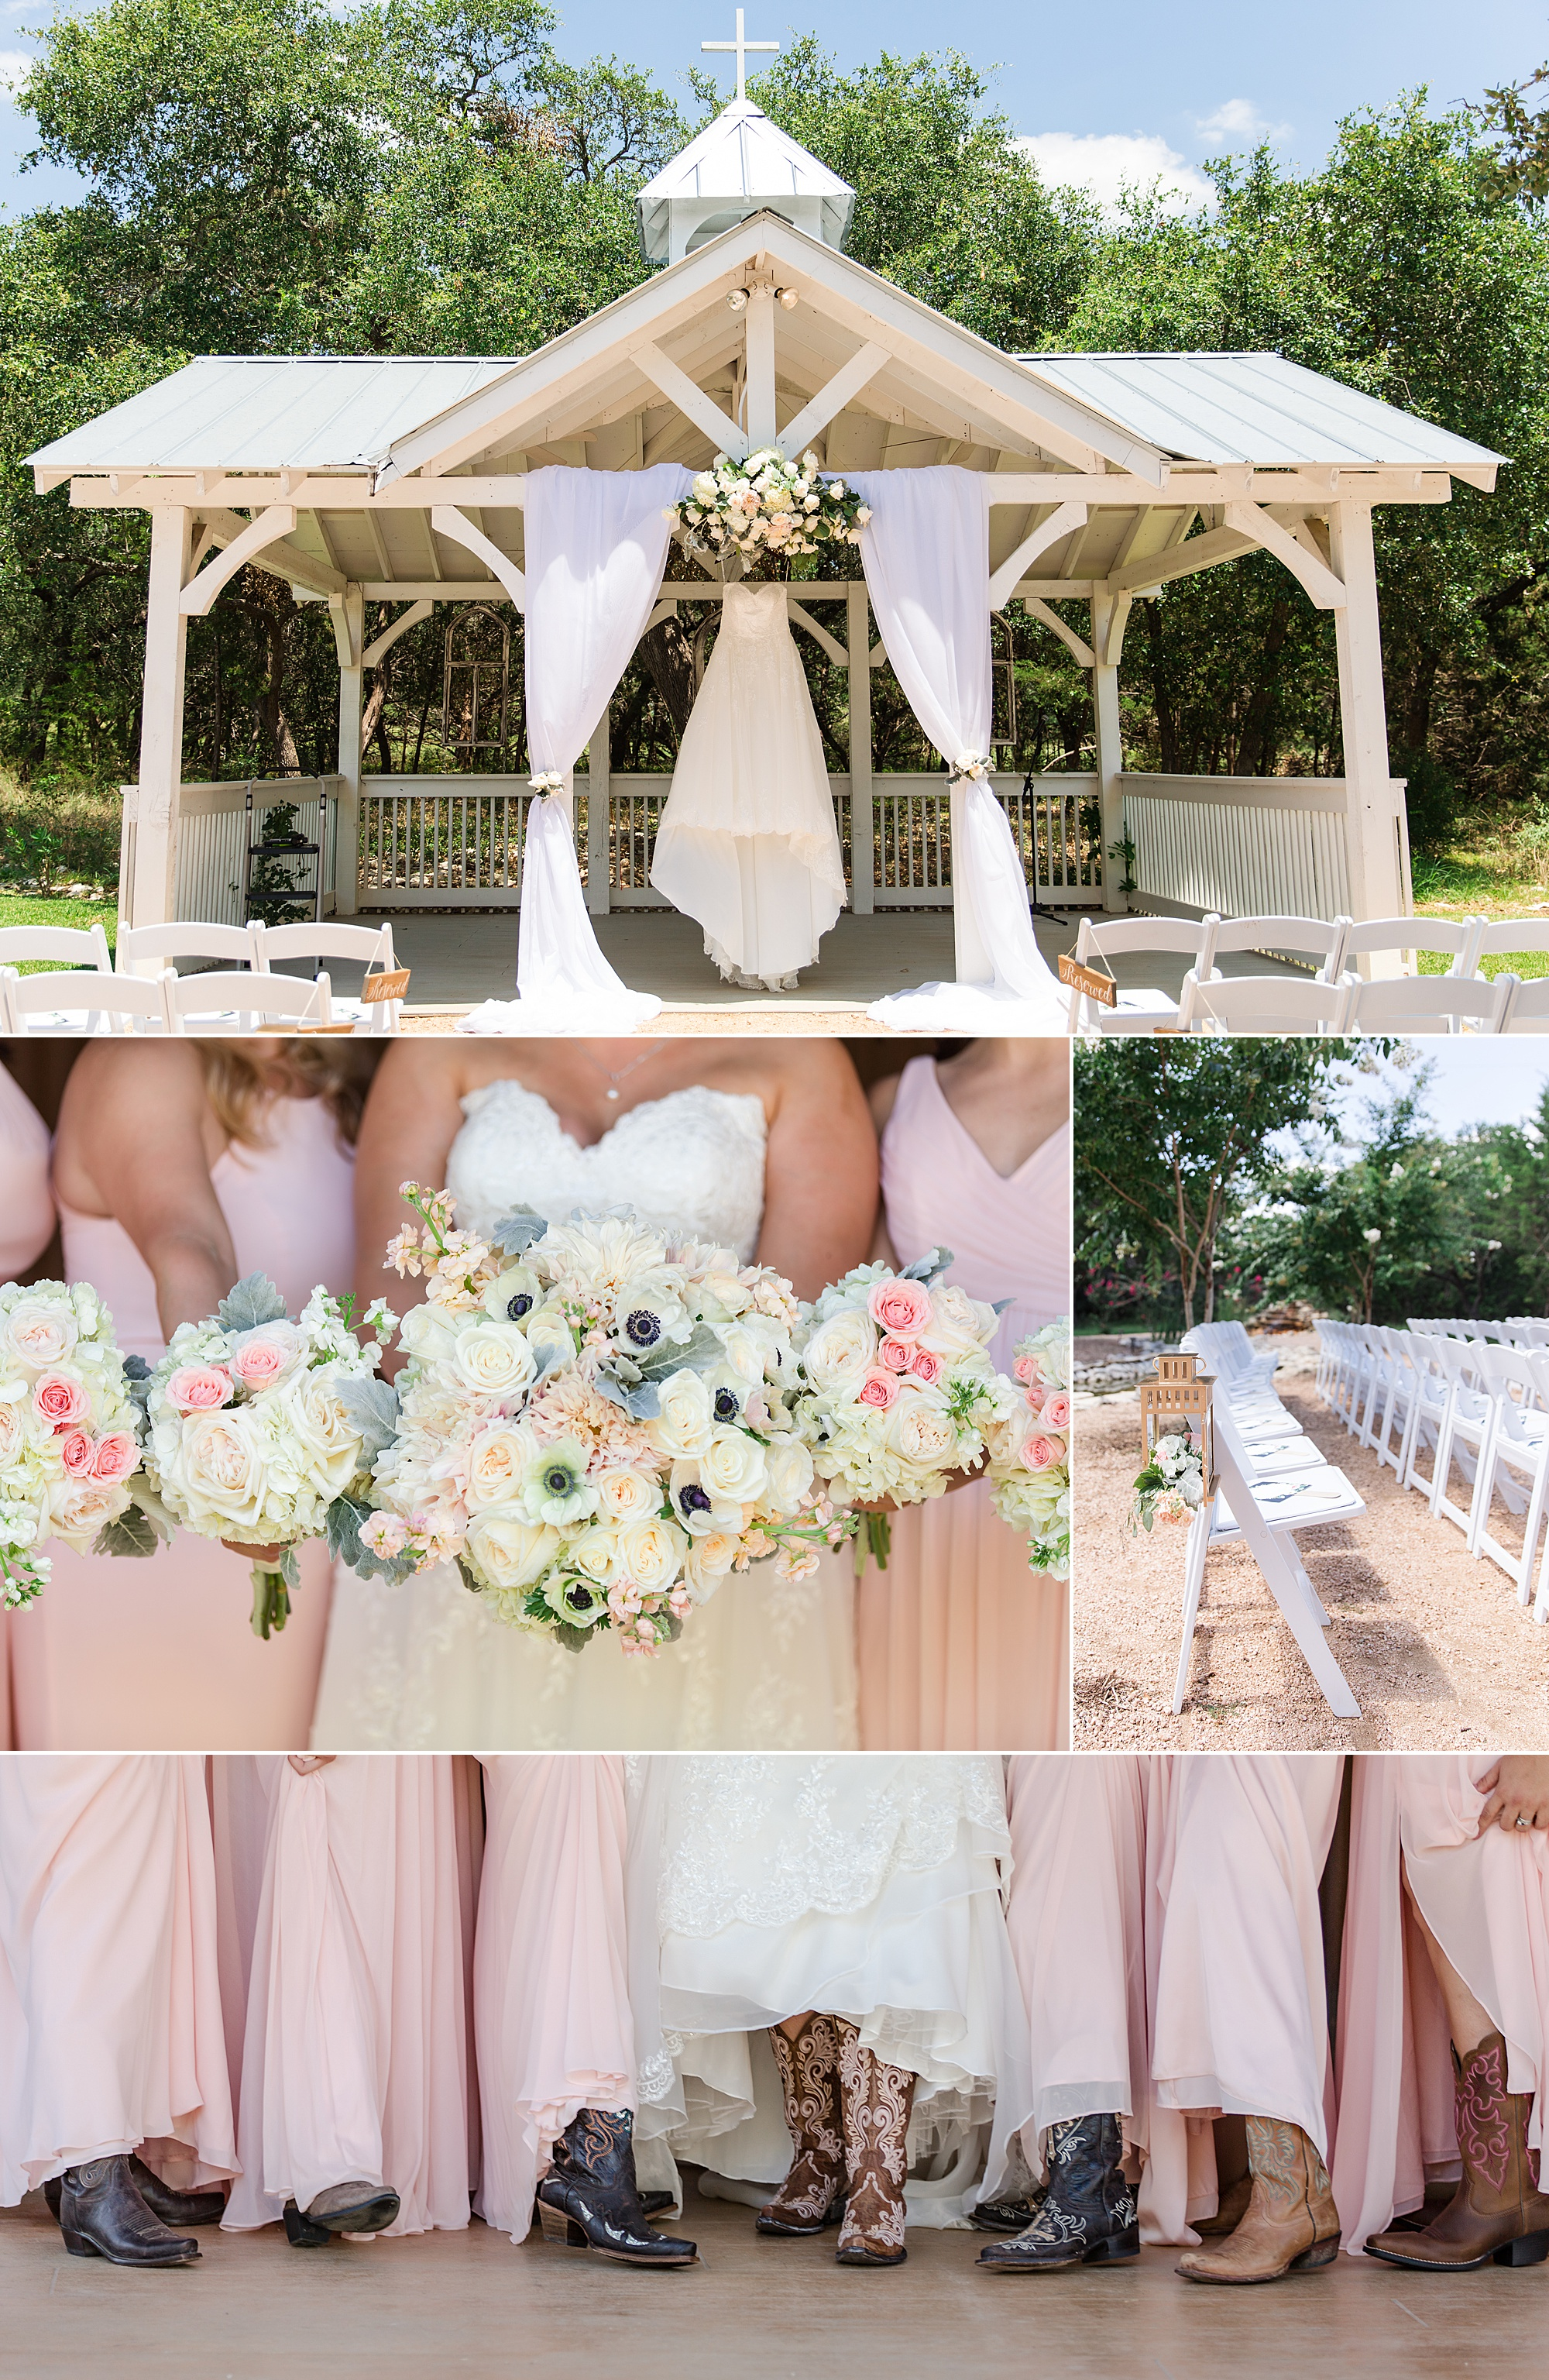 Wedding-Photographer-Bulverde-Texas-Western-Sky-Event-Venue-Carly-Barton-Photography_0011.jpg